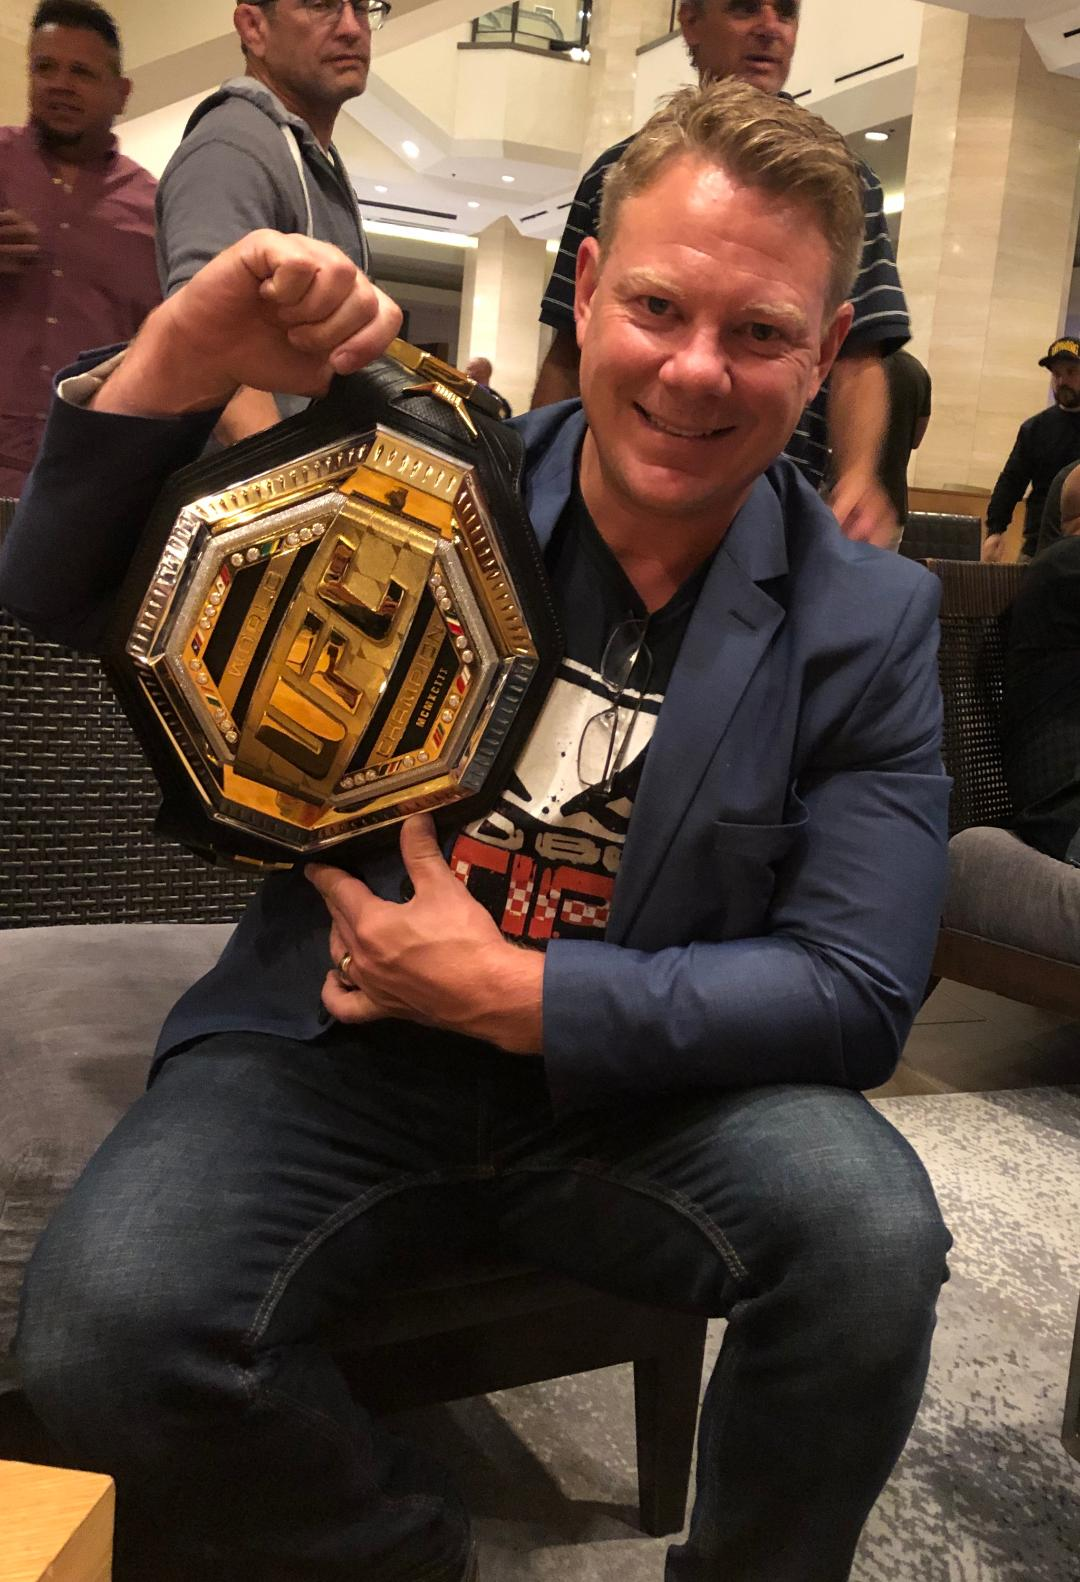 Stipe Miocic is hoping to defend his UFC heavyweight title for the fifth time on Saturday against Francis Ngannou